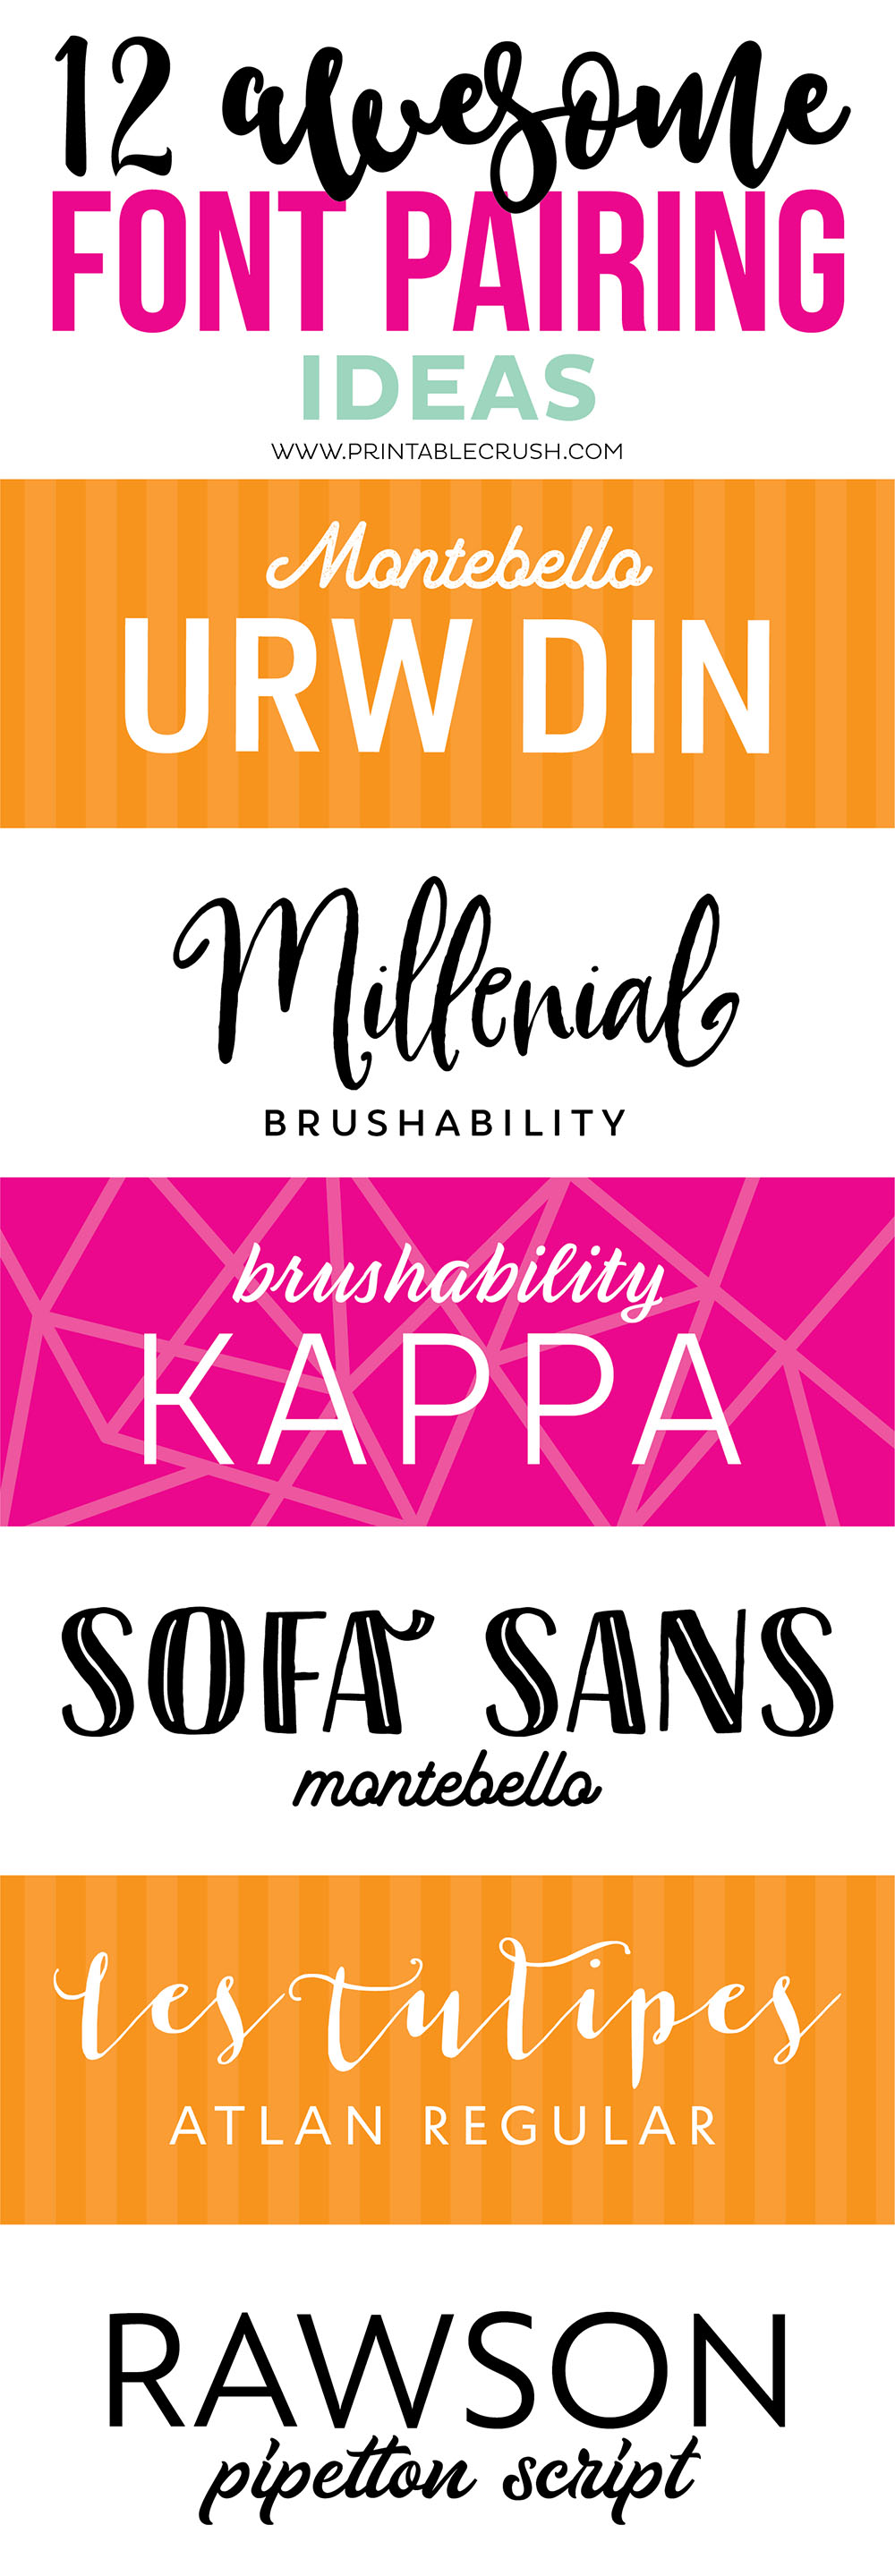 Before you create your own designs, check out some awesome font pairing ideas with script, serif, and sans serif fonts!